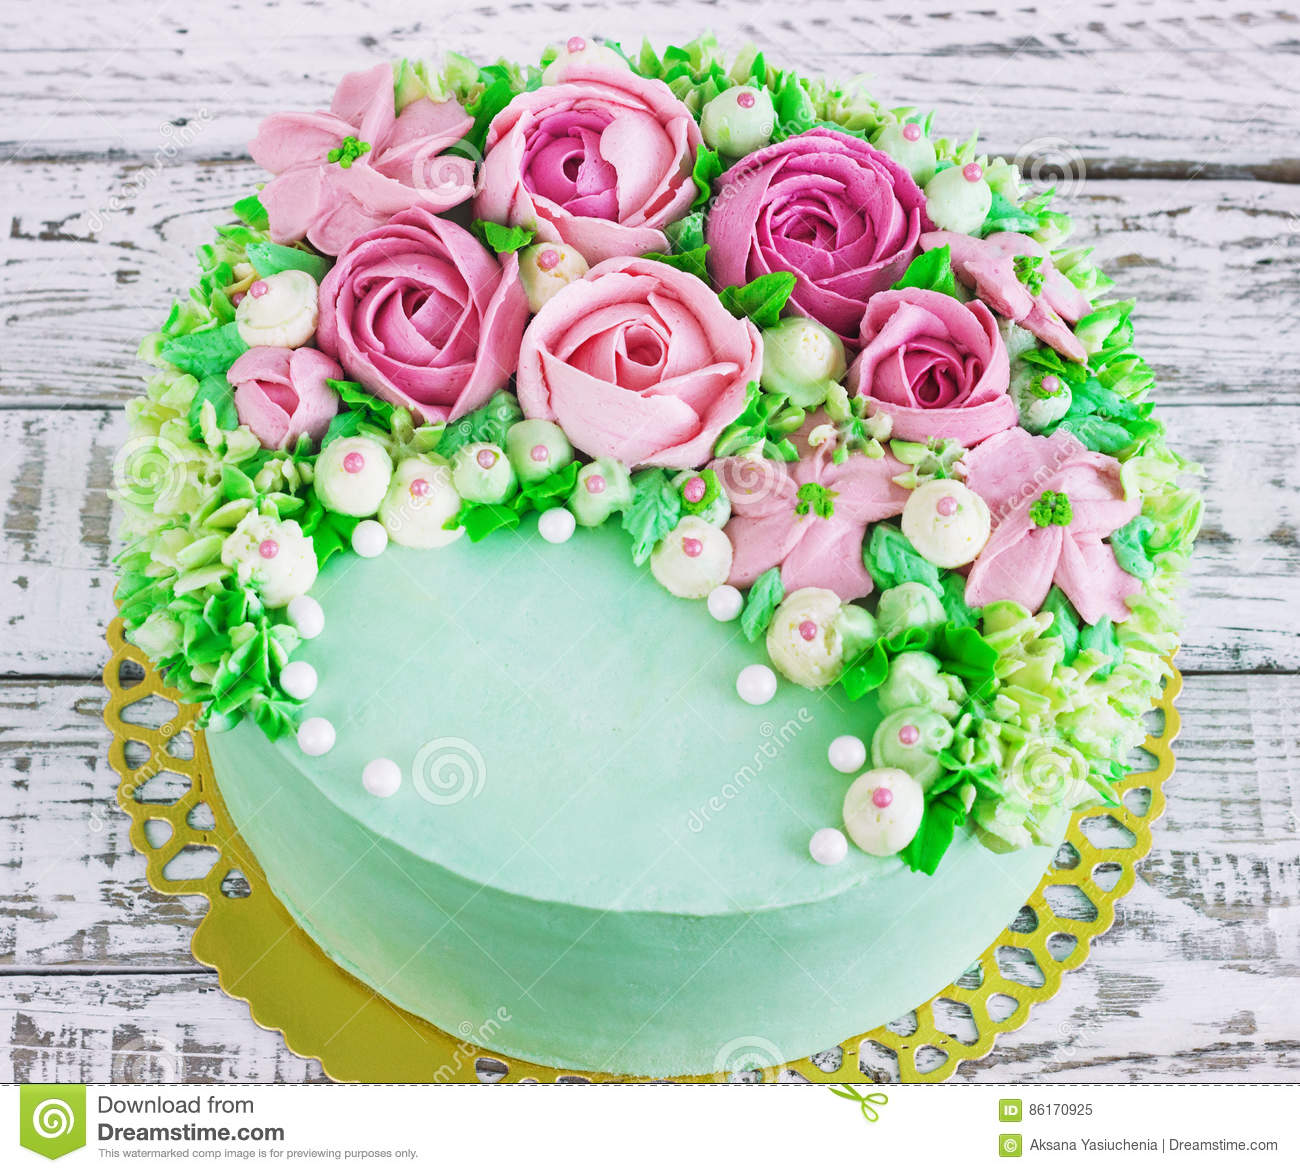 Birthday cake with flowers rose on white background stock image download birthday cake with flowers rose on white background stock image image of celebration izmirmasajfo